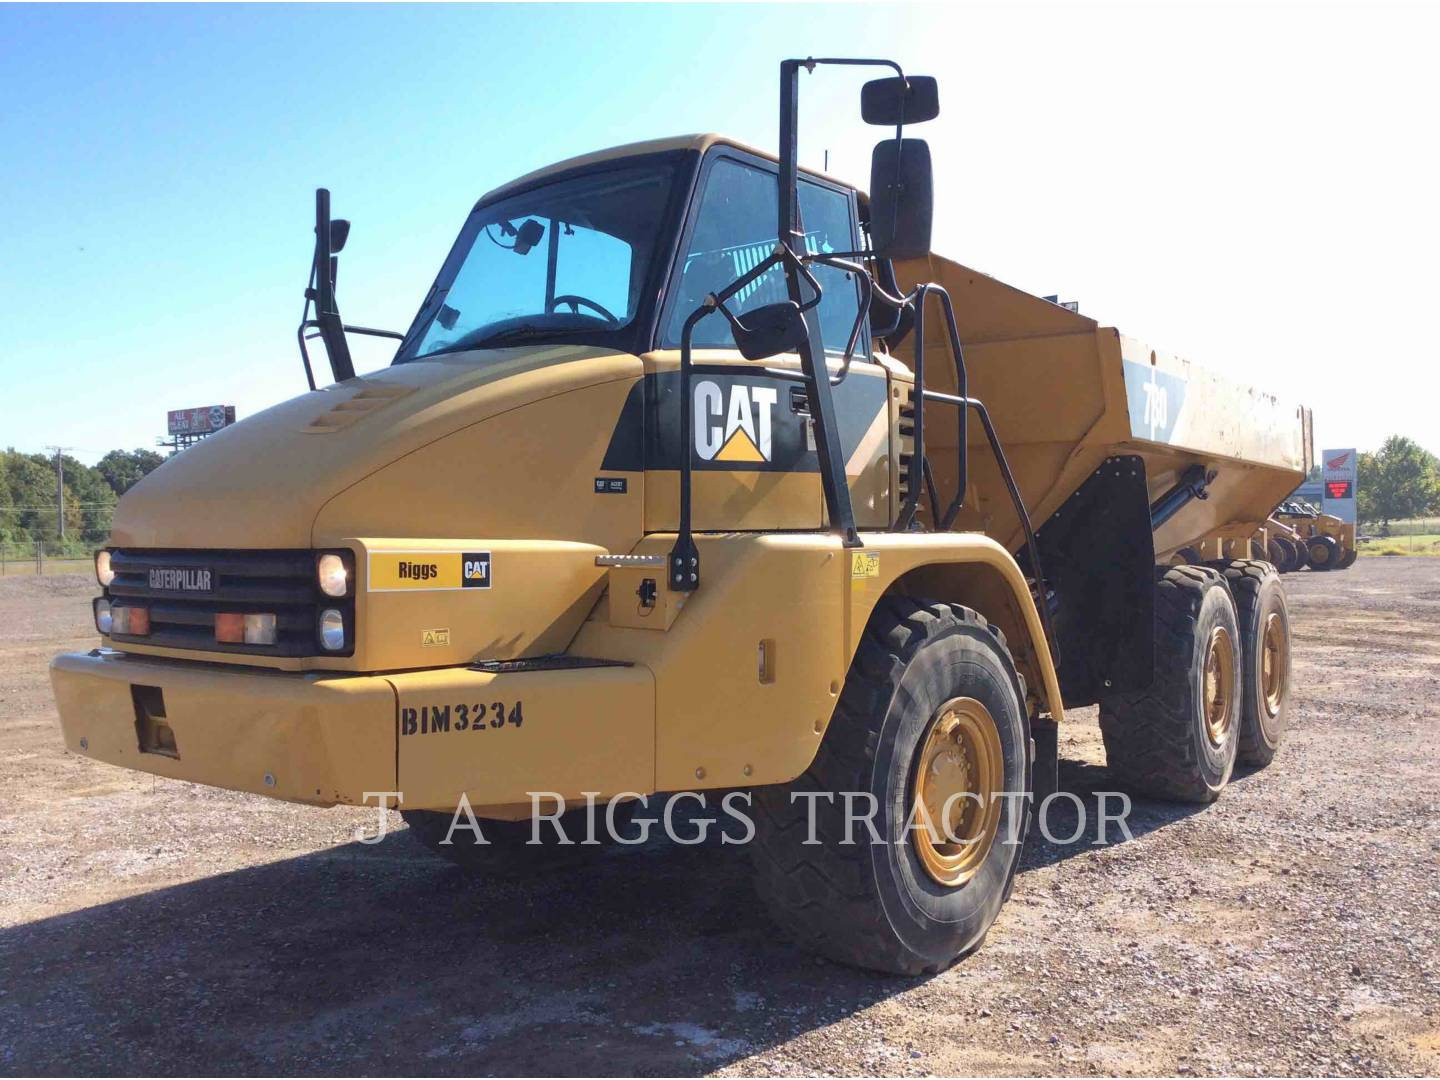 used articulated trucks for sale arkansas riggs cat. Black Bedroom Furniture Sets. Home Design Ideas